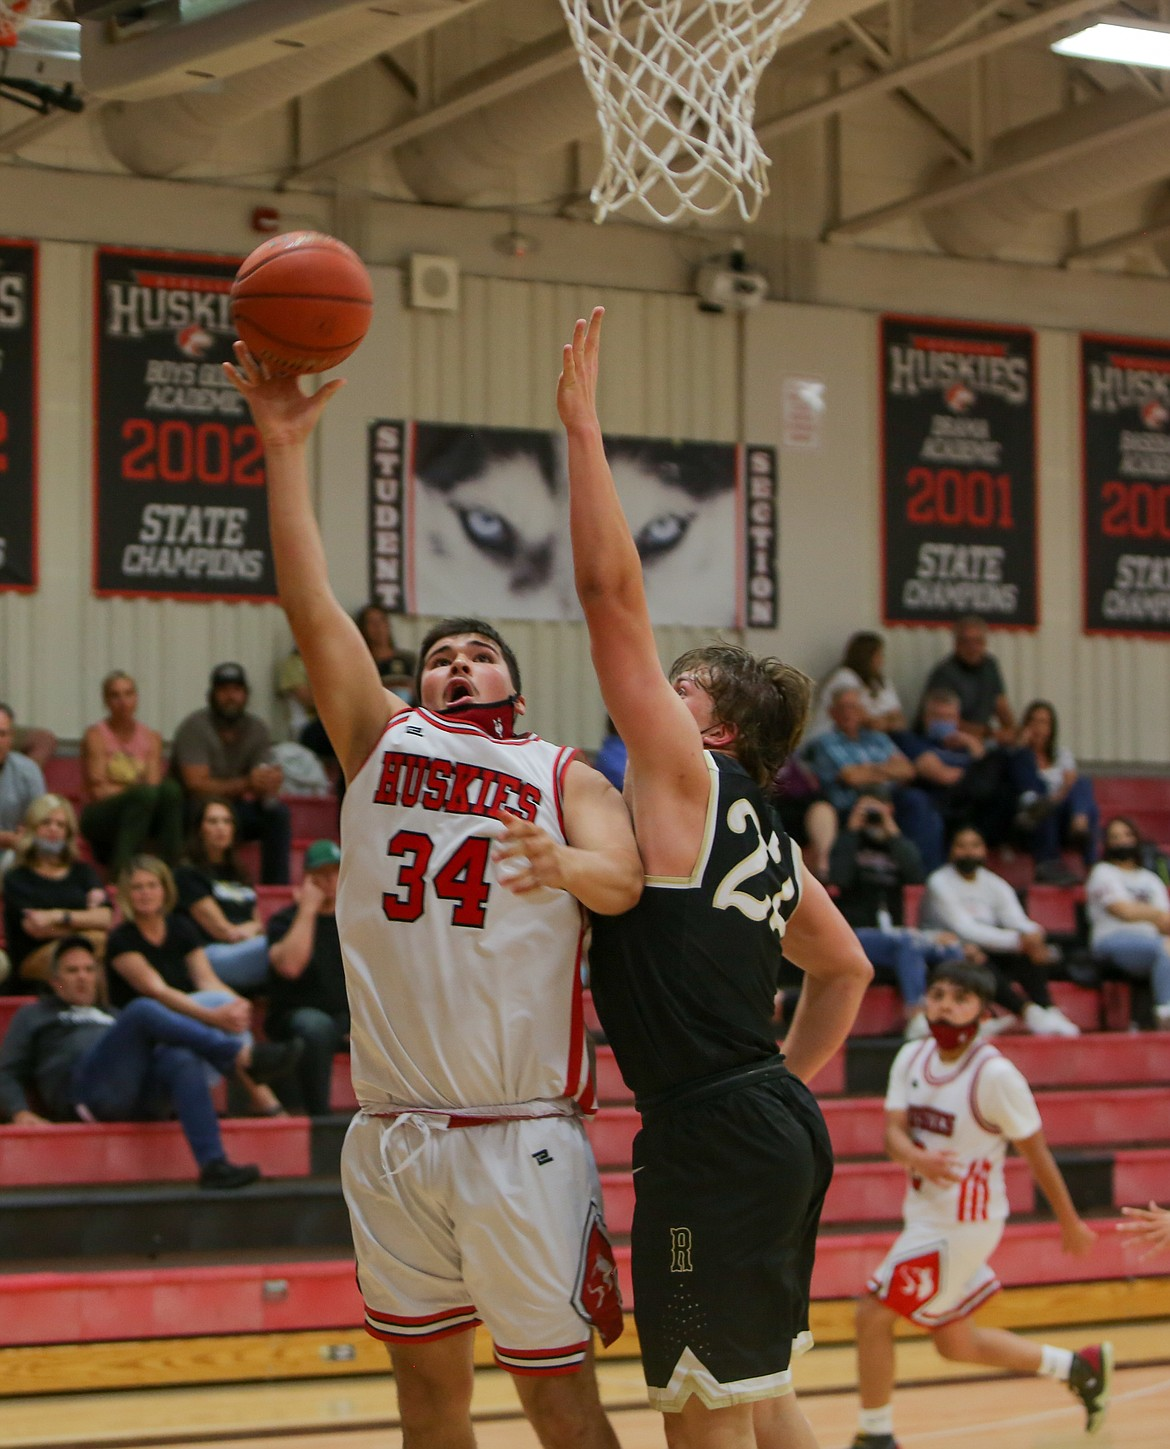 Othello's Julian Alegria fires a shot up in the paint for the Huskies in the second half at home against Royal High School on Saturday afternoon.